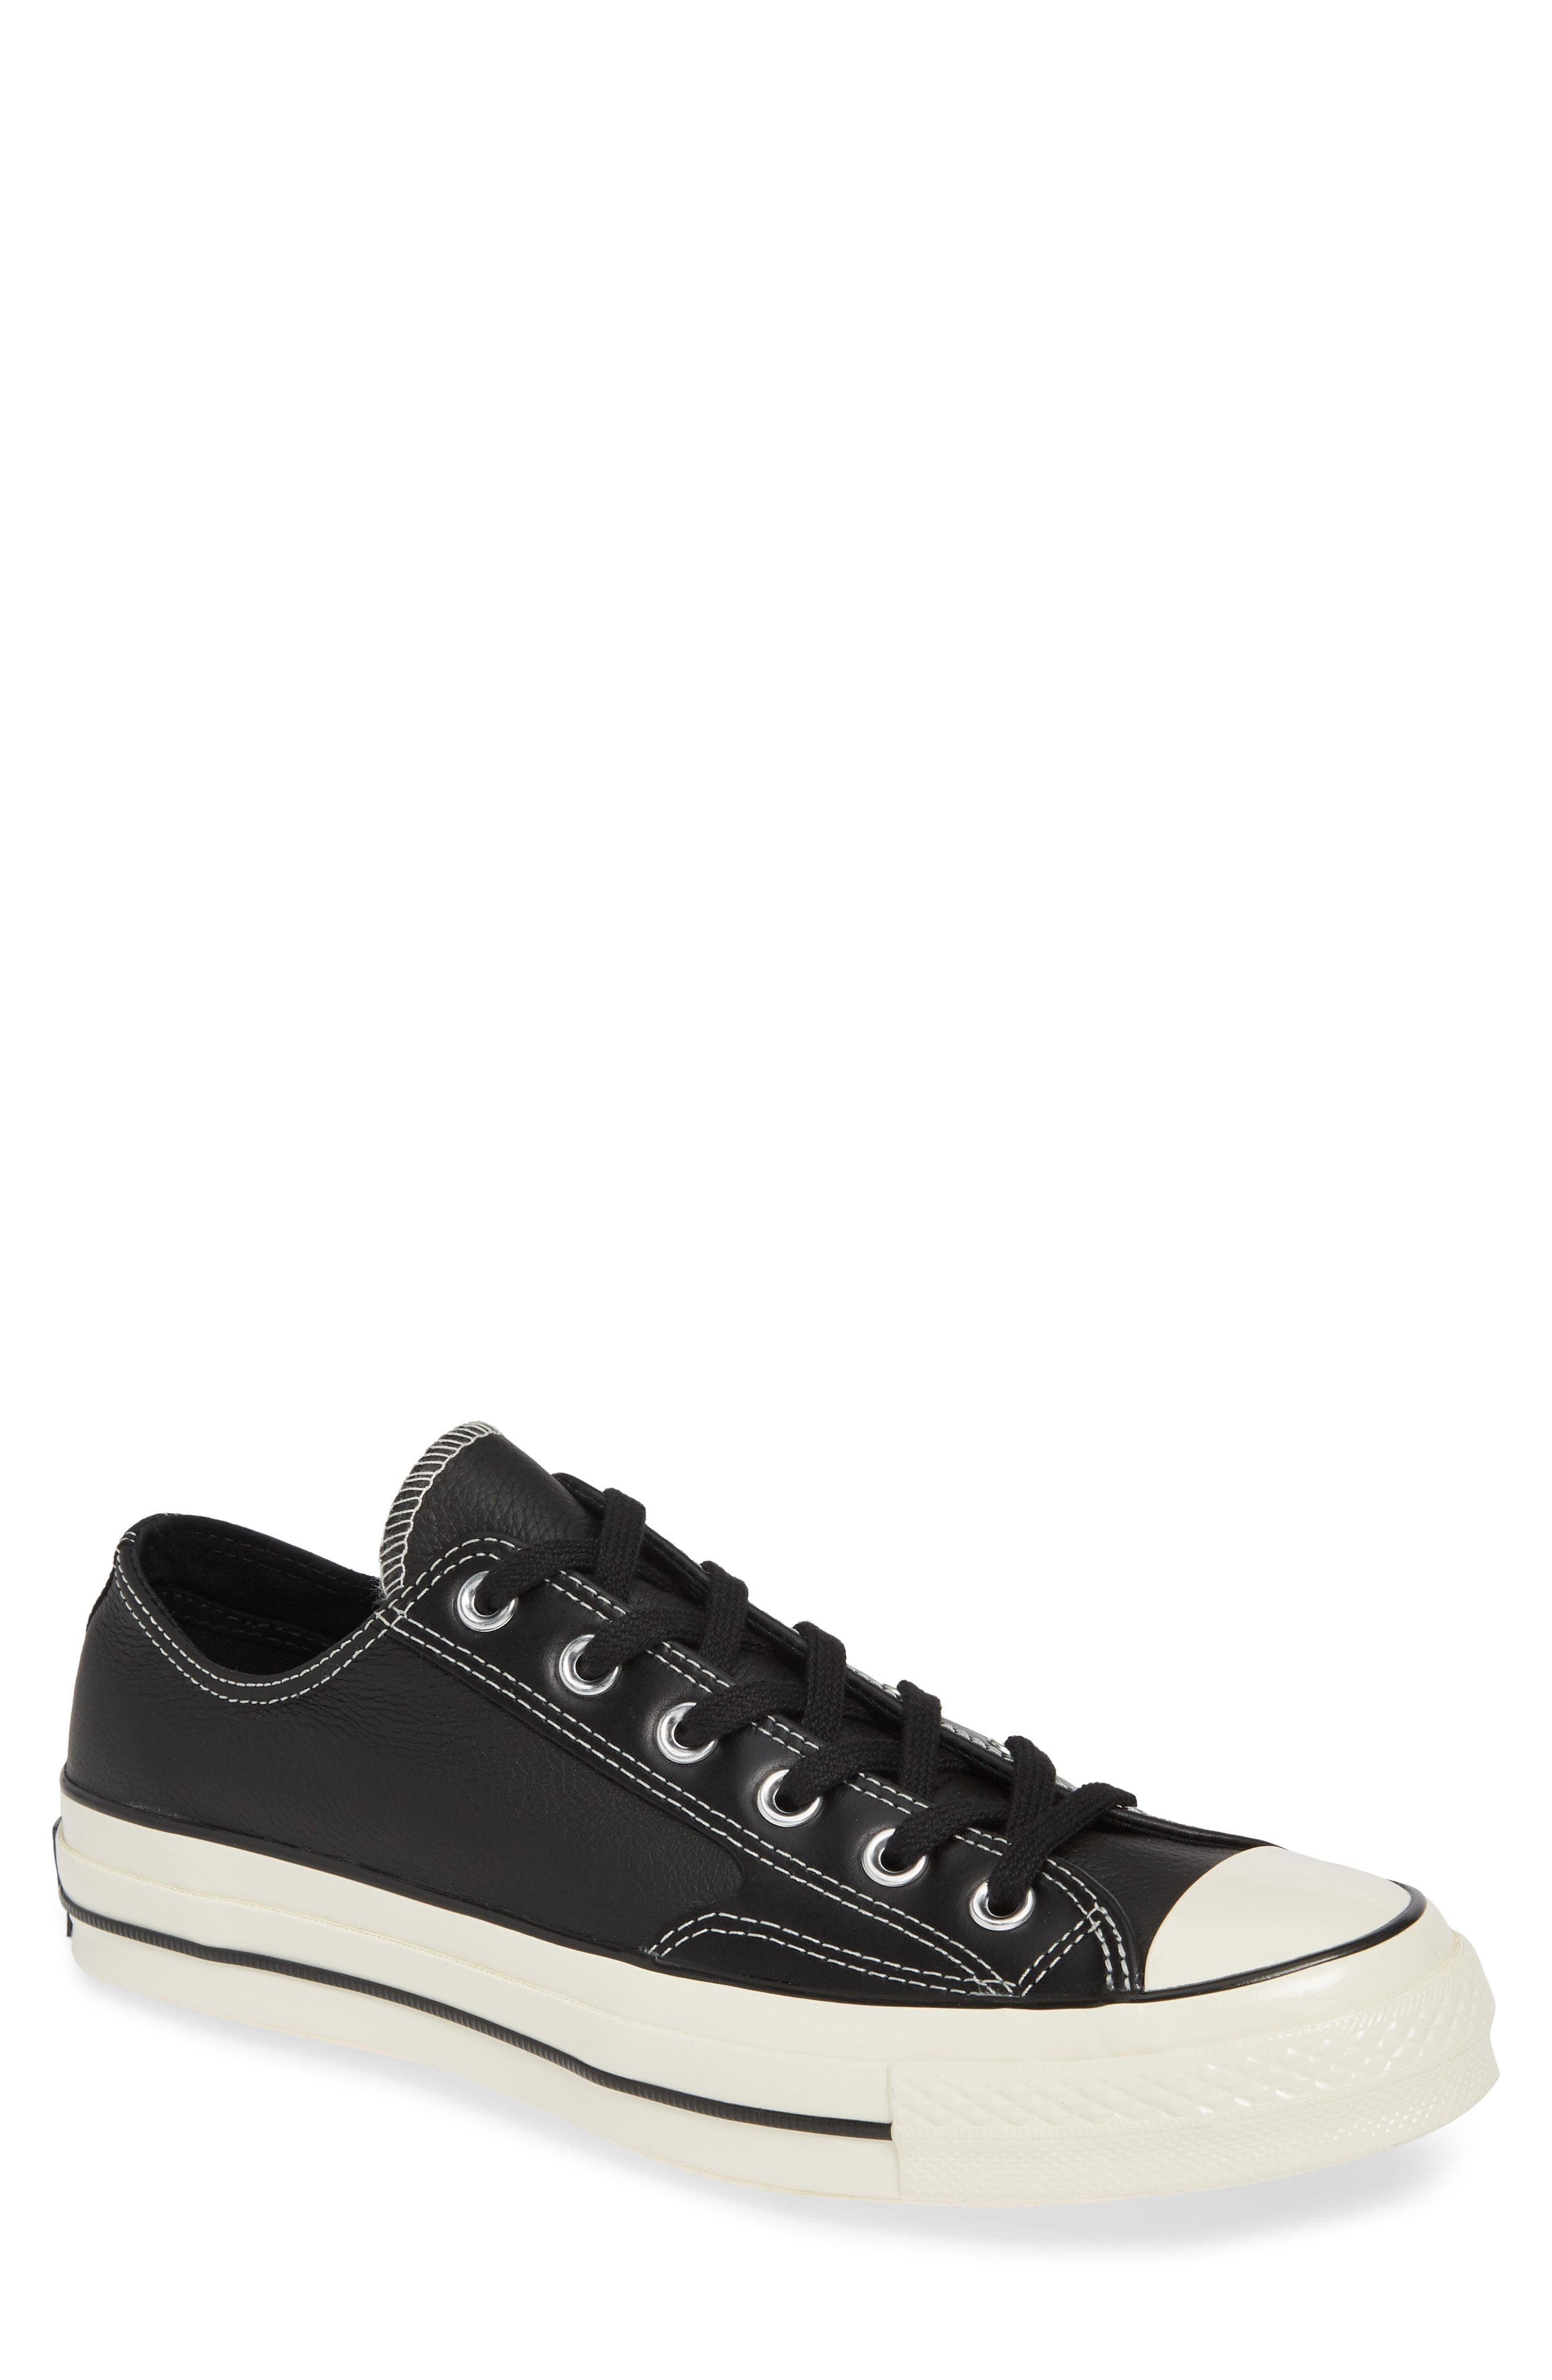 02cb939b403c22 CONVERSE CHUCK TAYLOR ALL STAR 70 LOW TOP LEATHER SNEAKER.  converse  shoes